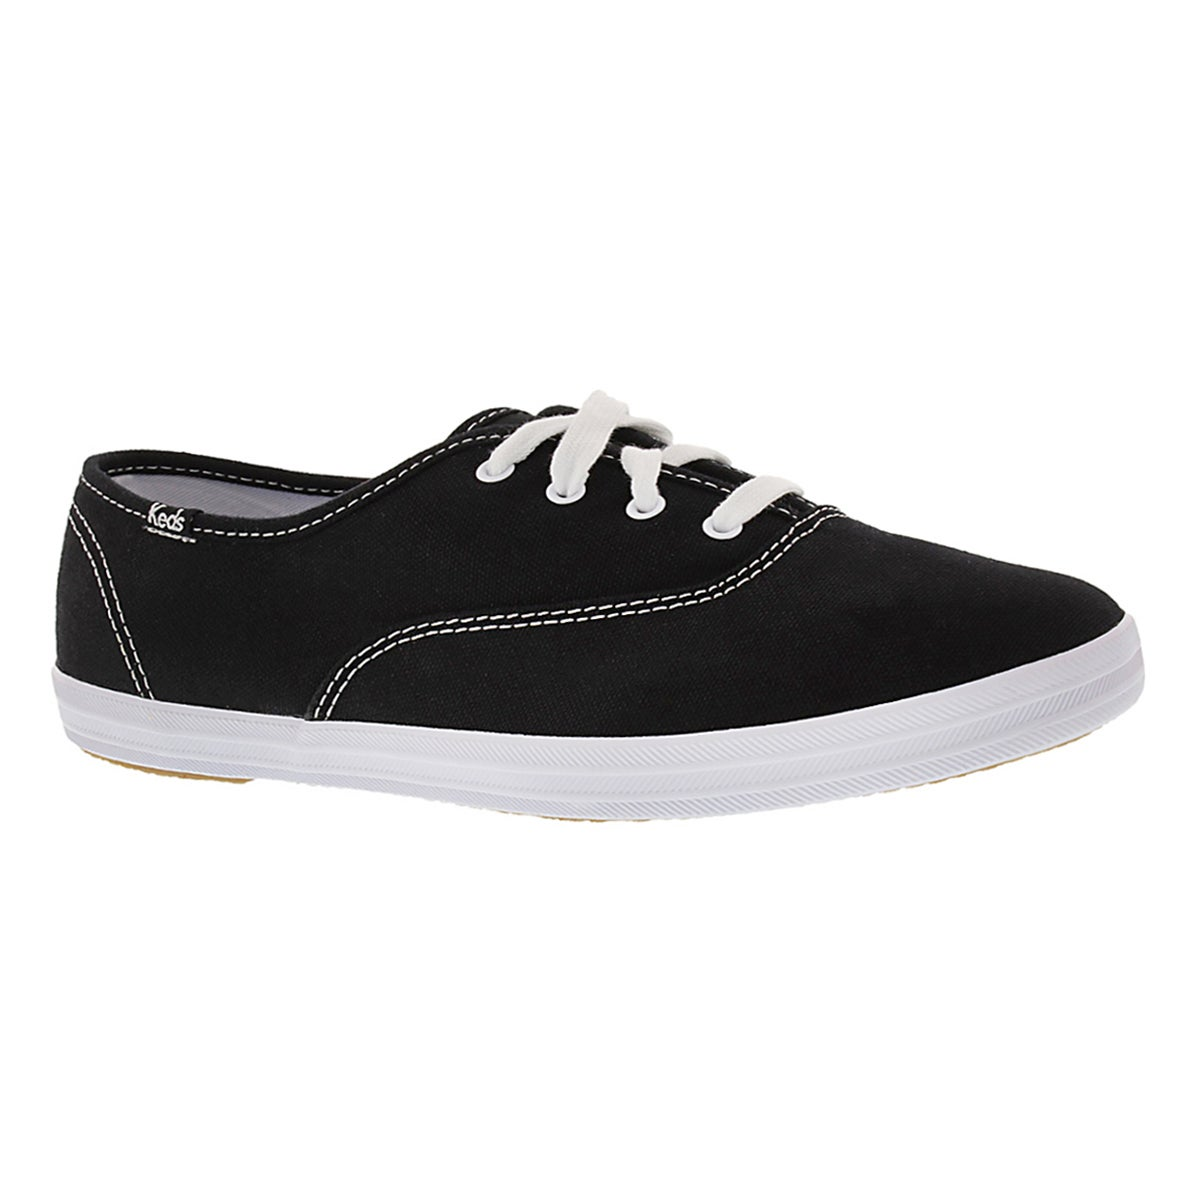 Women's CHAMPION OXFORD black sneakers -Extra Wide